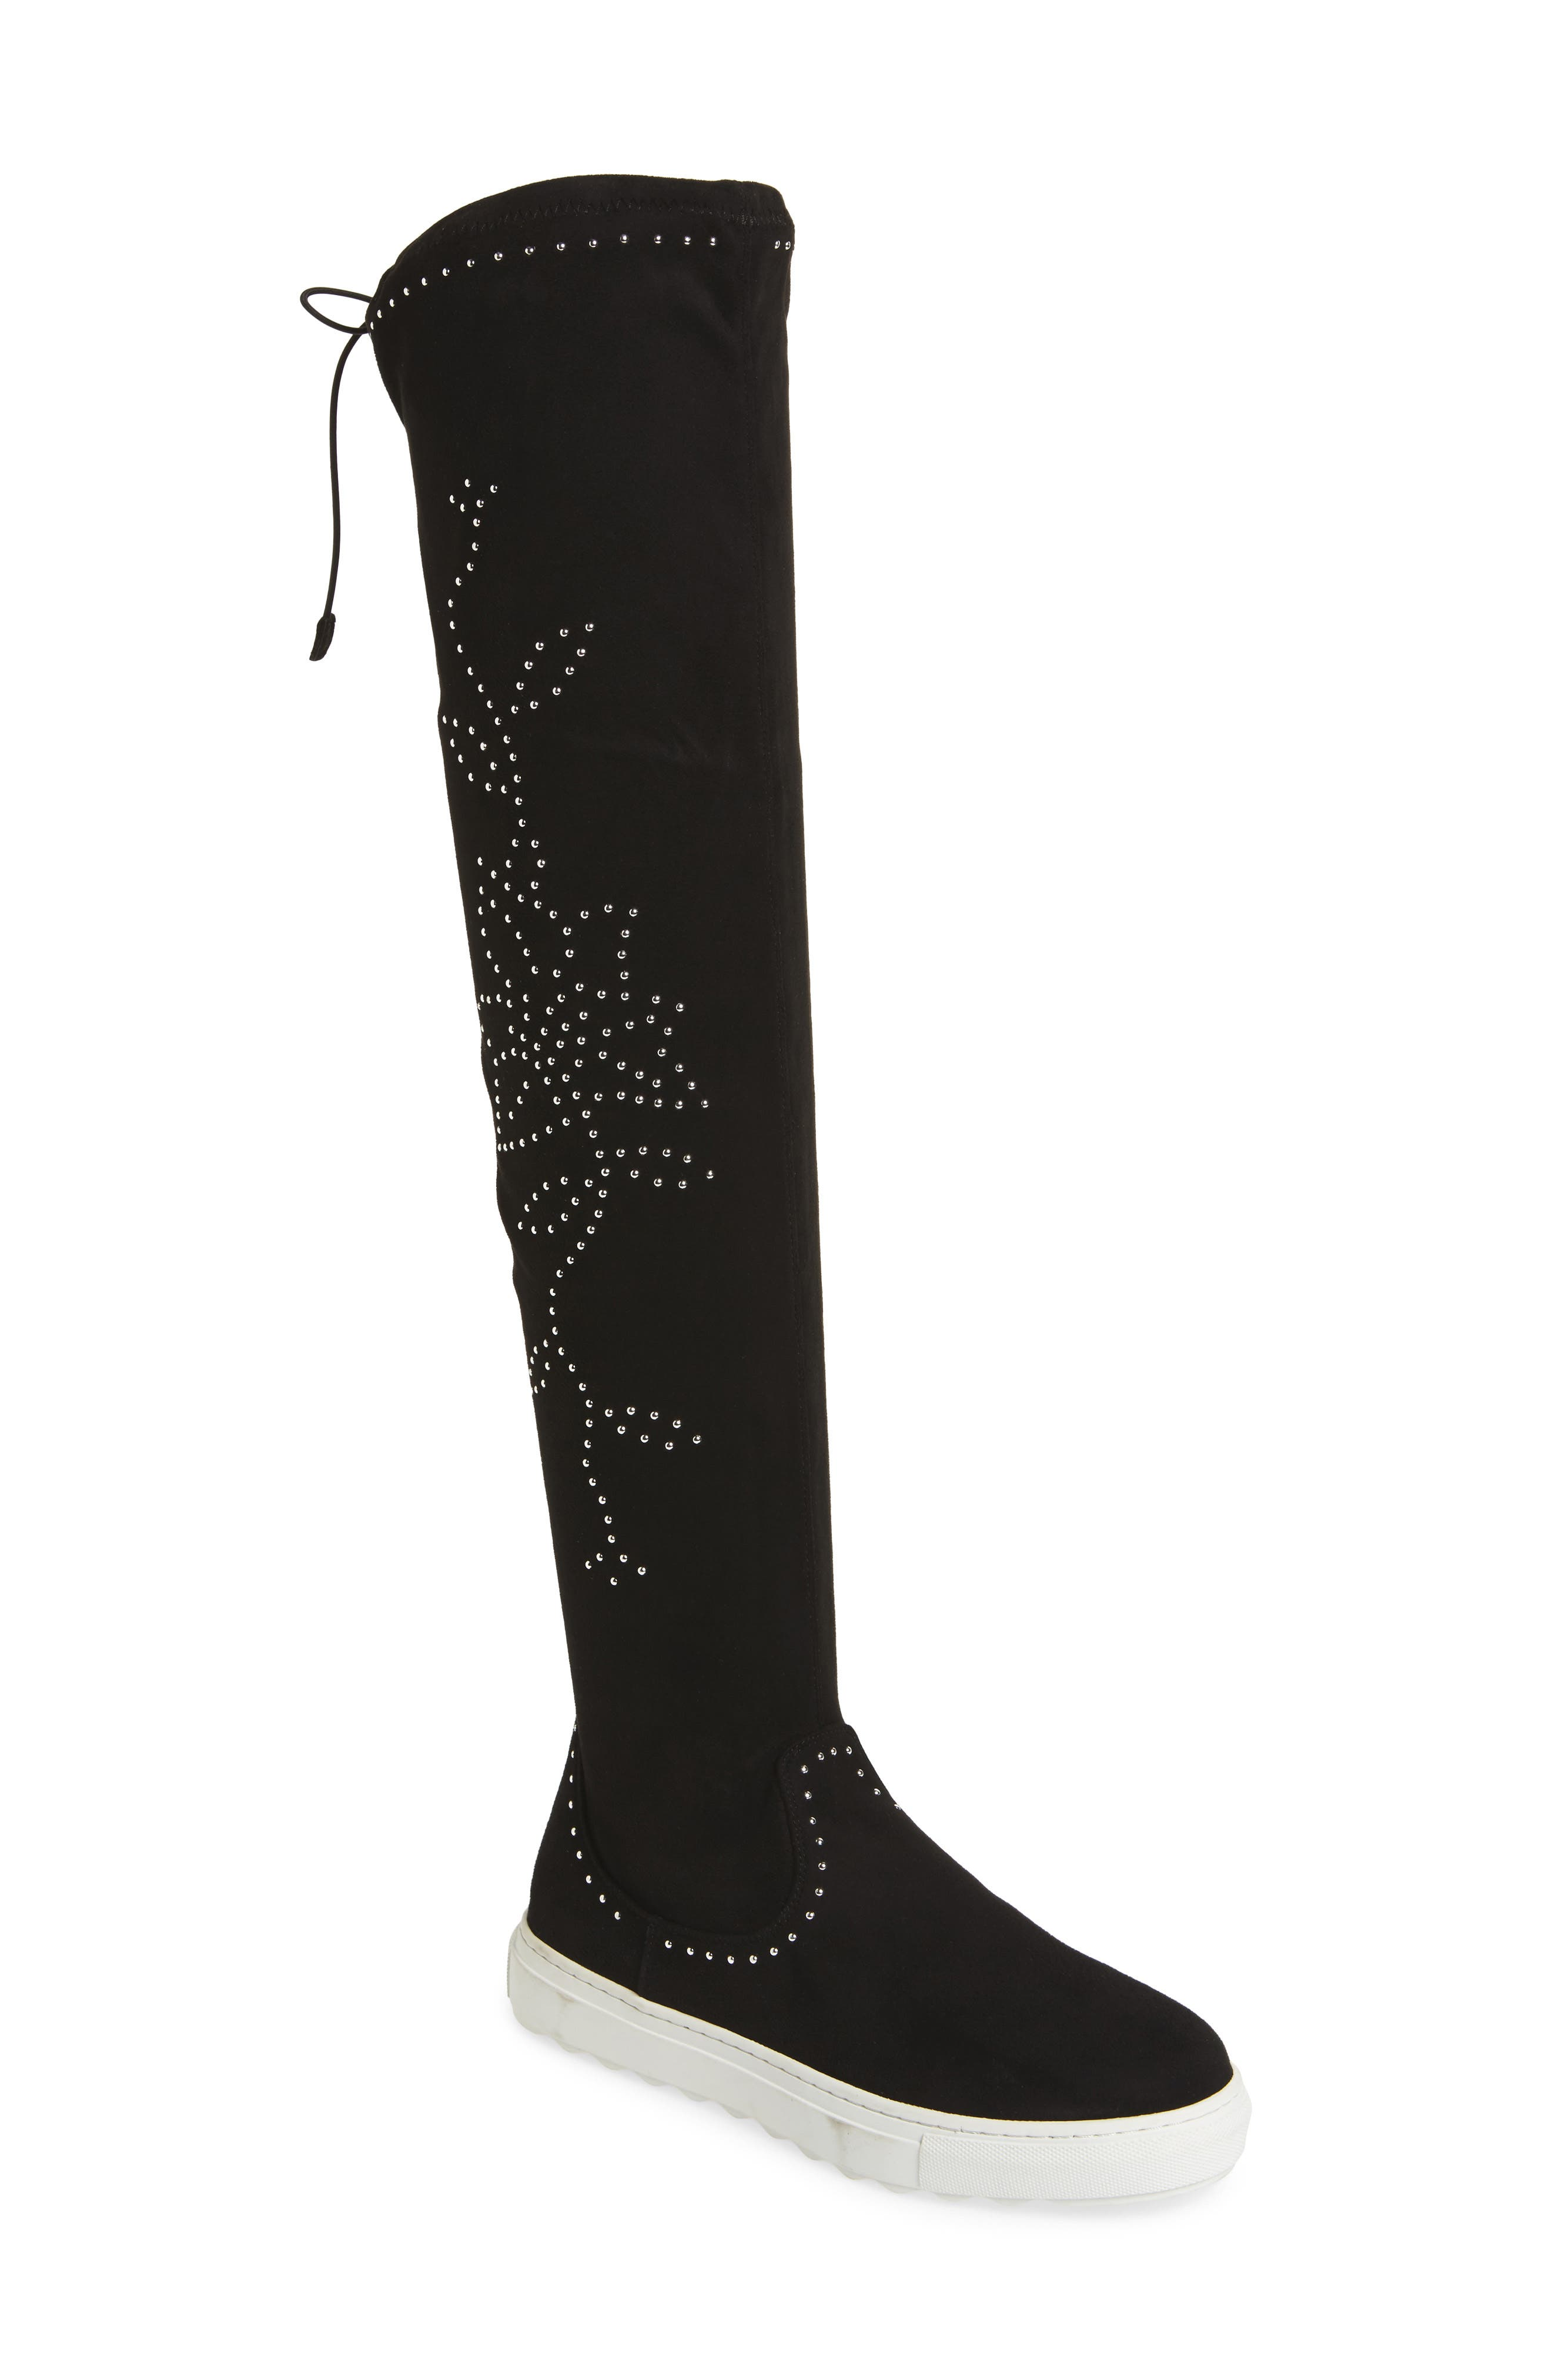 Plentee Over the Knee Boot,                         Main,                         color, Black Stretch Suede